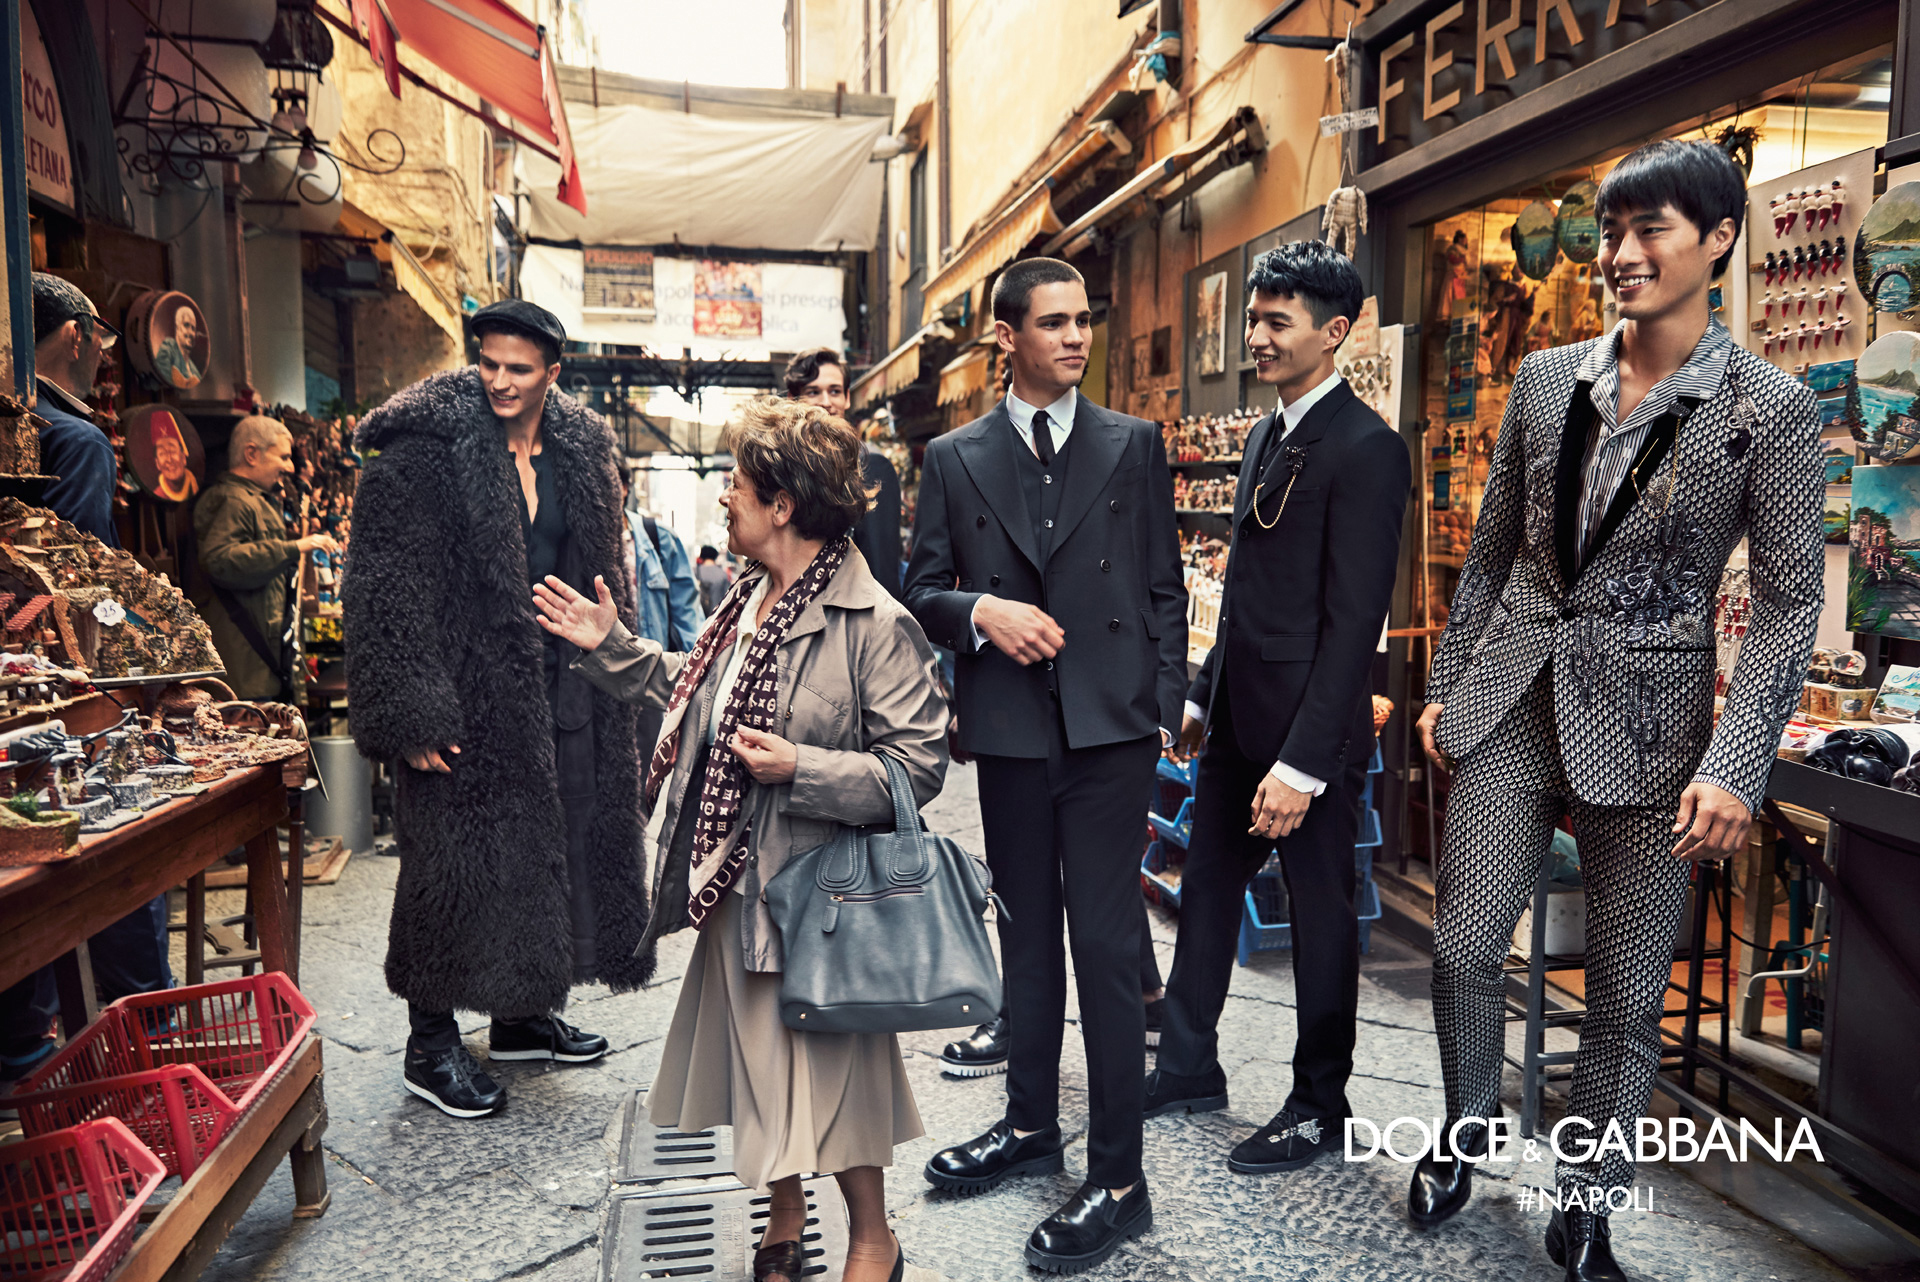 Dolce-Gabbana-Fall-Winter-2016-2017-Ad-Campaign-Naples-2